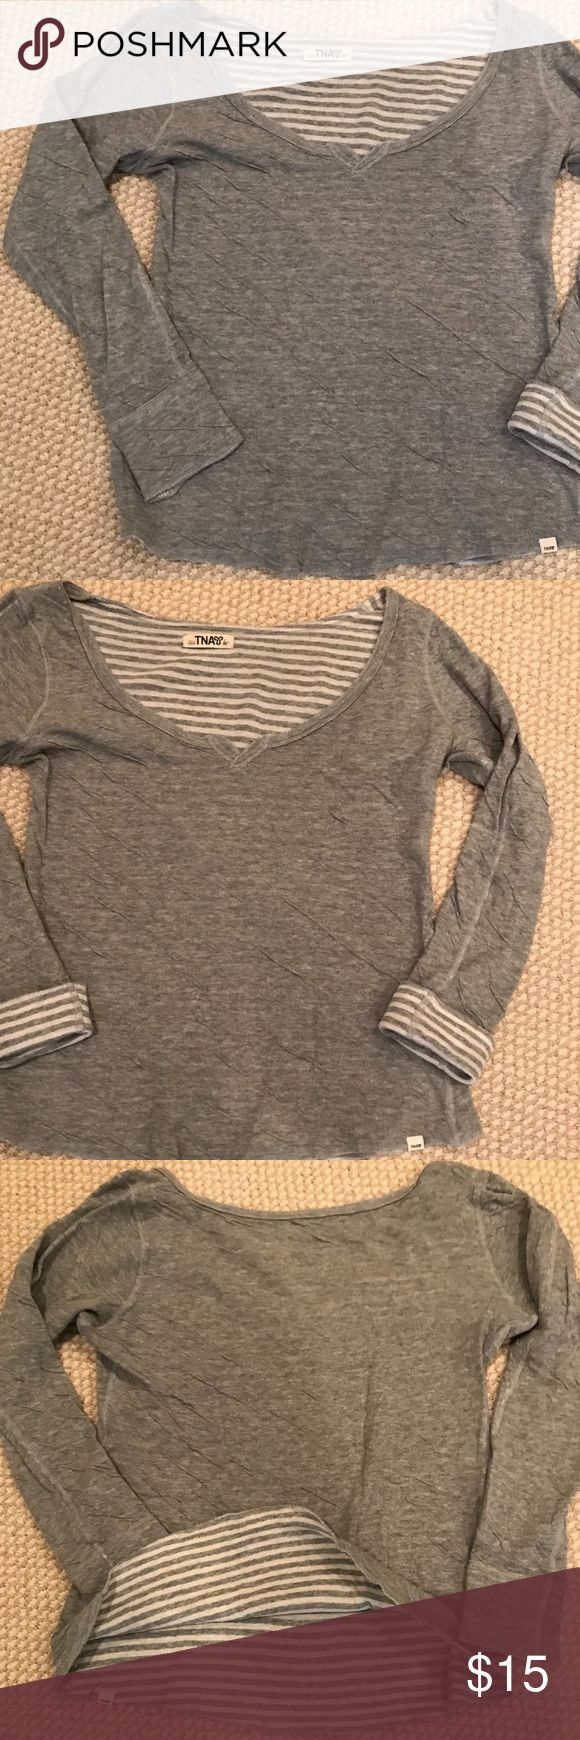 Aritzia 'TNA' Long Sleeve Reversible Top A great basic and essential piece to add to your collection, this TNA long sleeve is super comfy and cozy with its cotton material and stretch fit. Wear it however you like and you can even fold sleeves back for a stylish contrasting color look! Looking for layering pieces to add to your fall wardrobe or for back to school? Well, this reversible top is perfect for you! Check out the other colors we have this top in as well! Worn with love and still in…